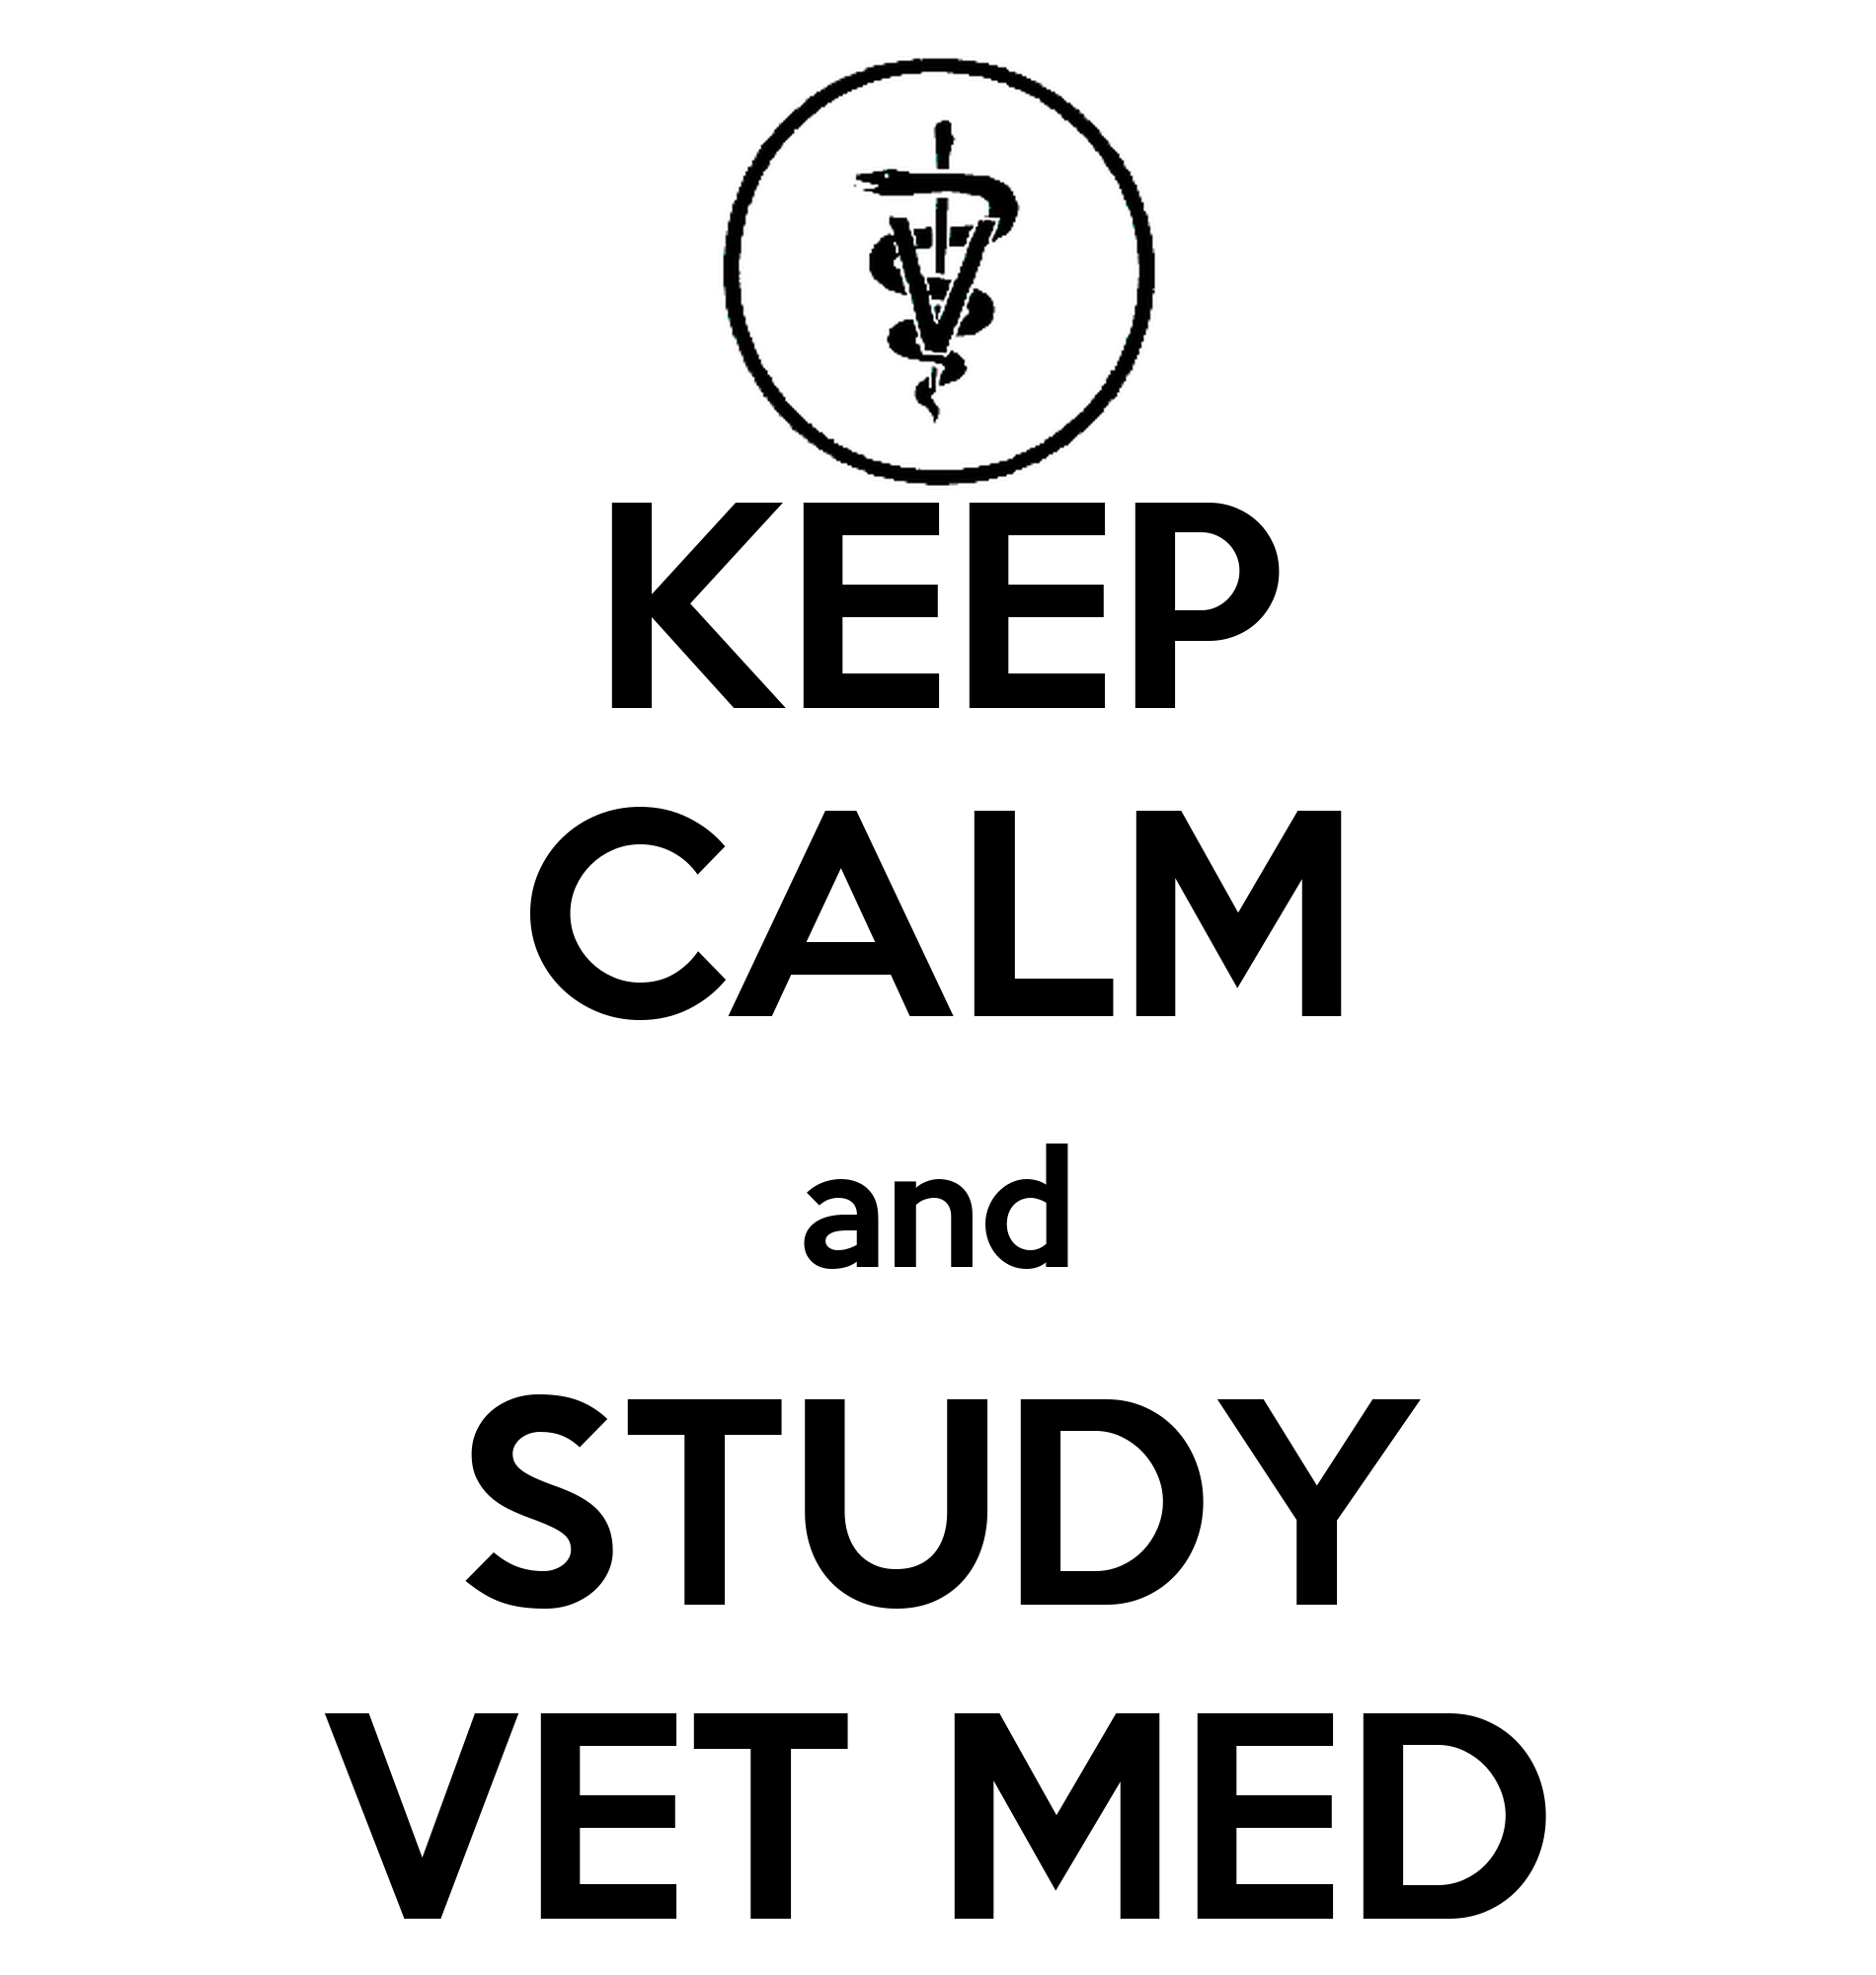 a study on veterinarians Establish yourself as an expert in the management, care and welfare of animals  csu's doctor of veterinary studies provides clinical and research skills and.